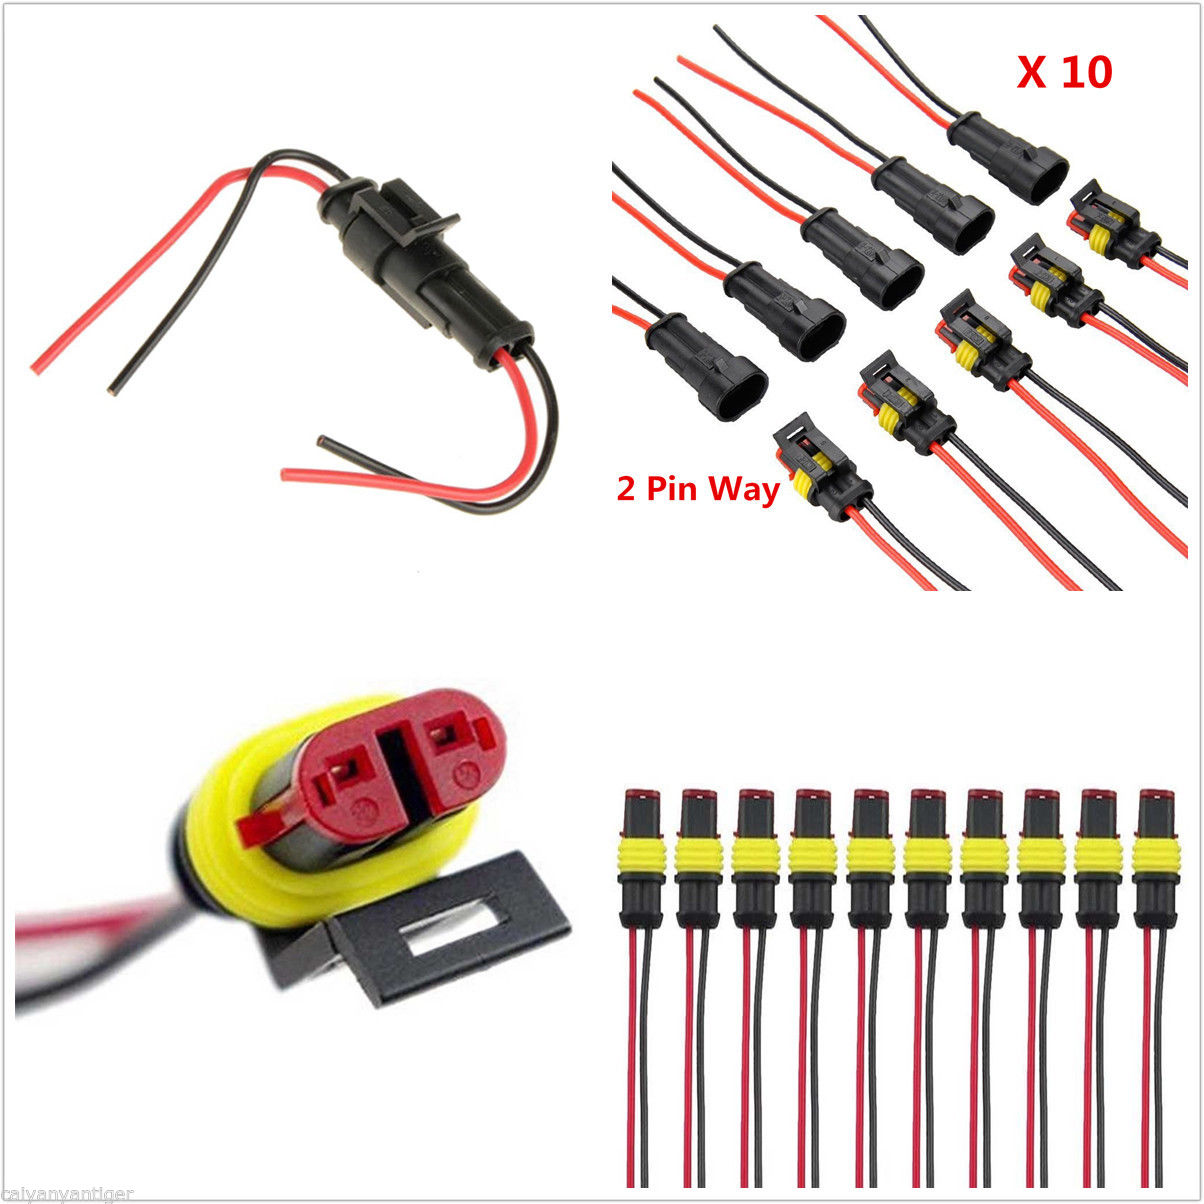 10 kit 2 Pin Way Car Waterproof Electrical Cable W/ Terminal Wire Connector Plug<br><br>Aliexpress